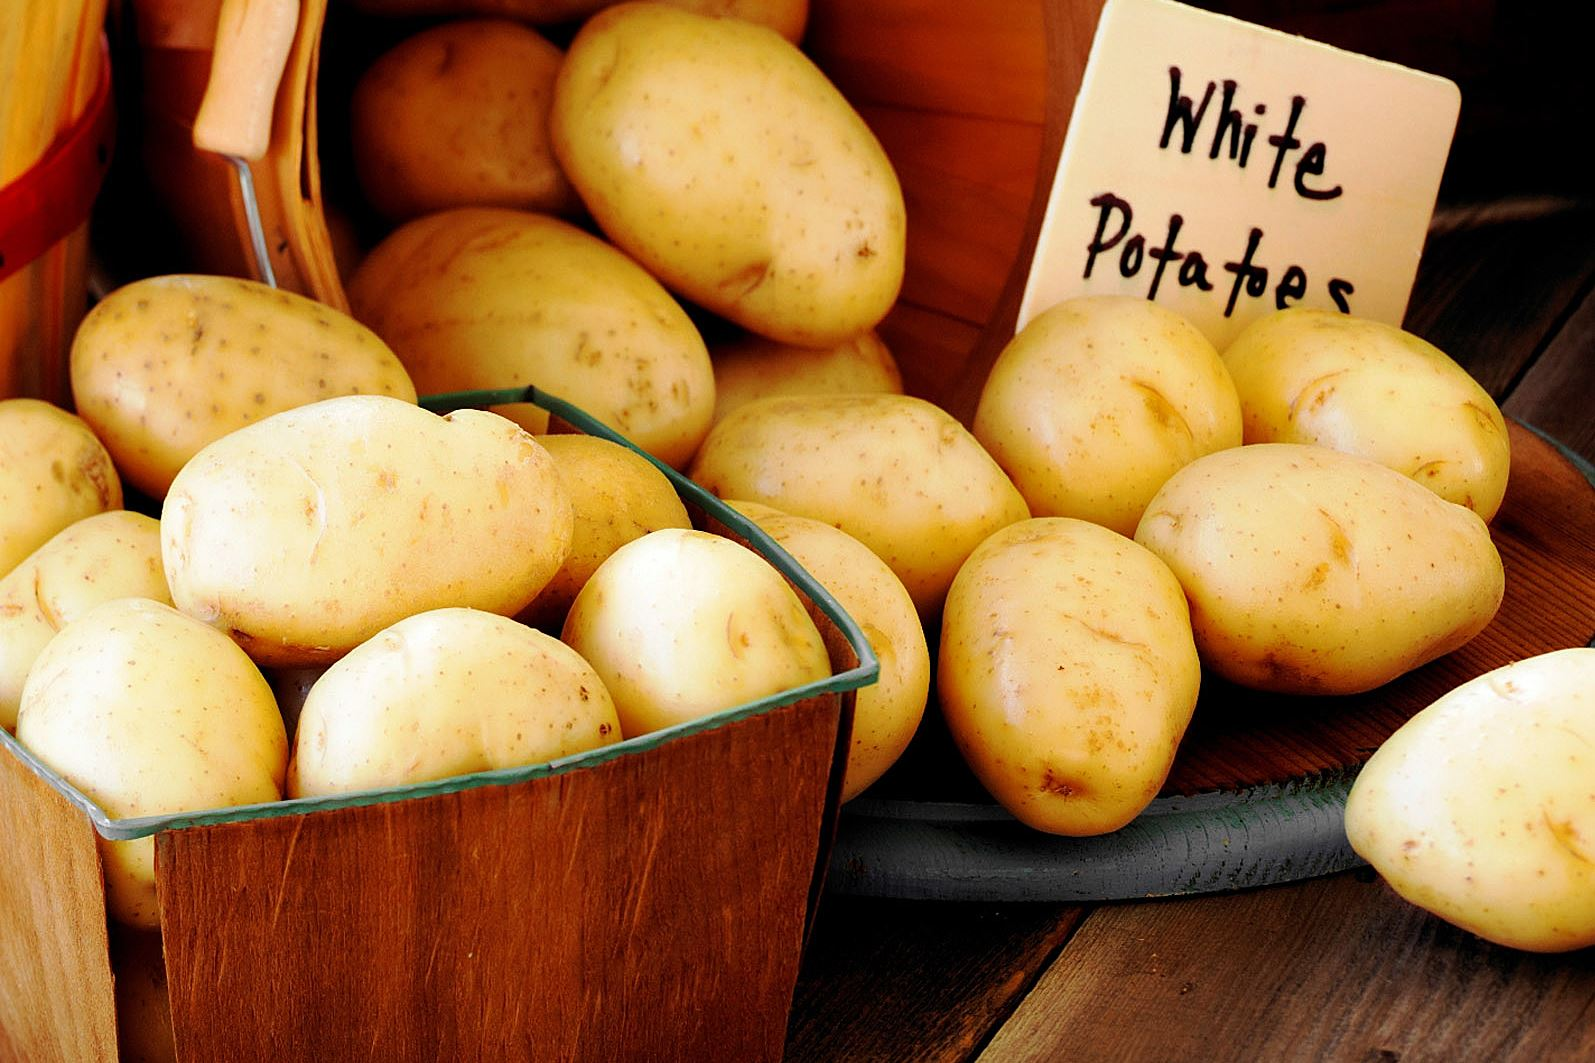 white potatoes-5 White potatoes come with a white or tan skin and are small to medium in size.